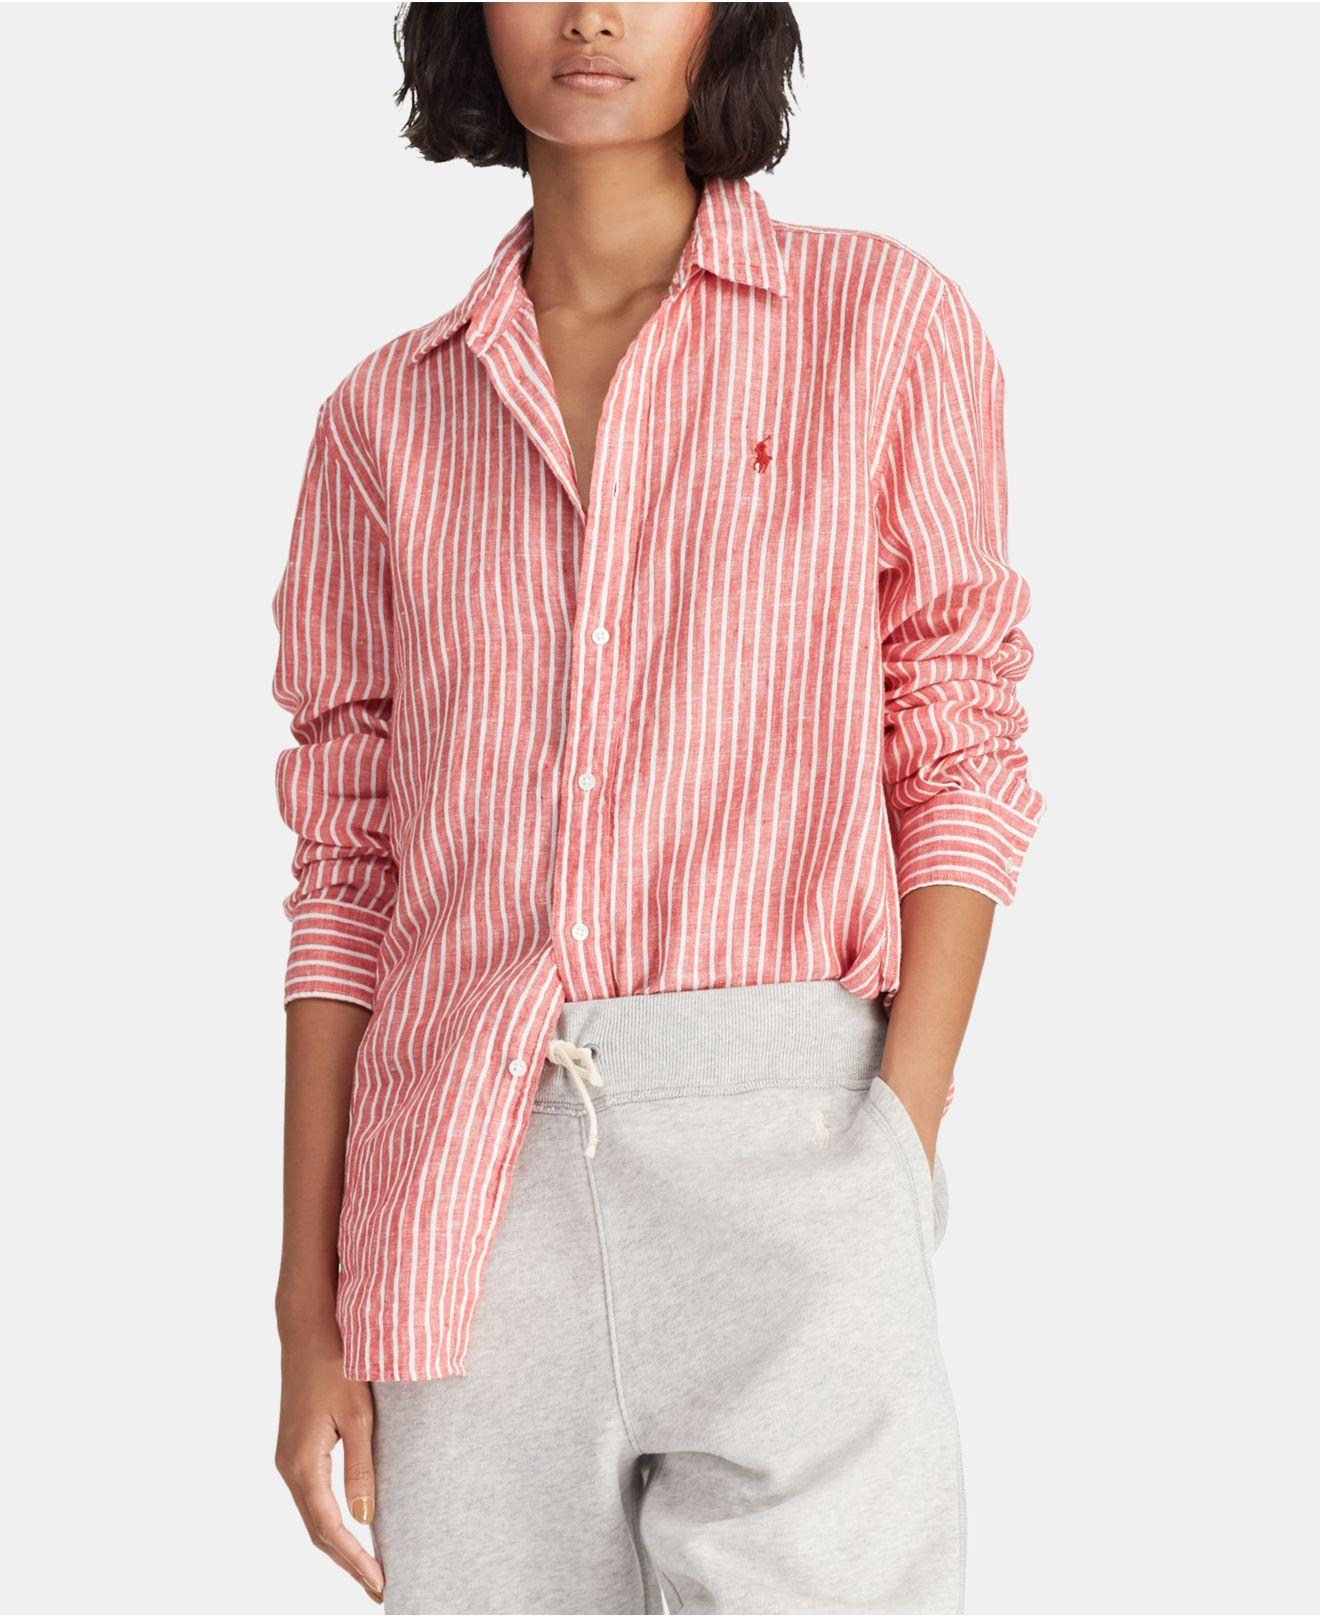 3024364ad Lyst - Polo Ralph Lauren Relaxed-fit Linen Shirt in Red